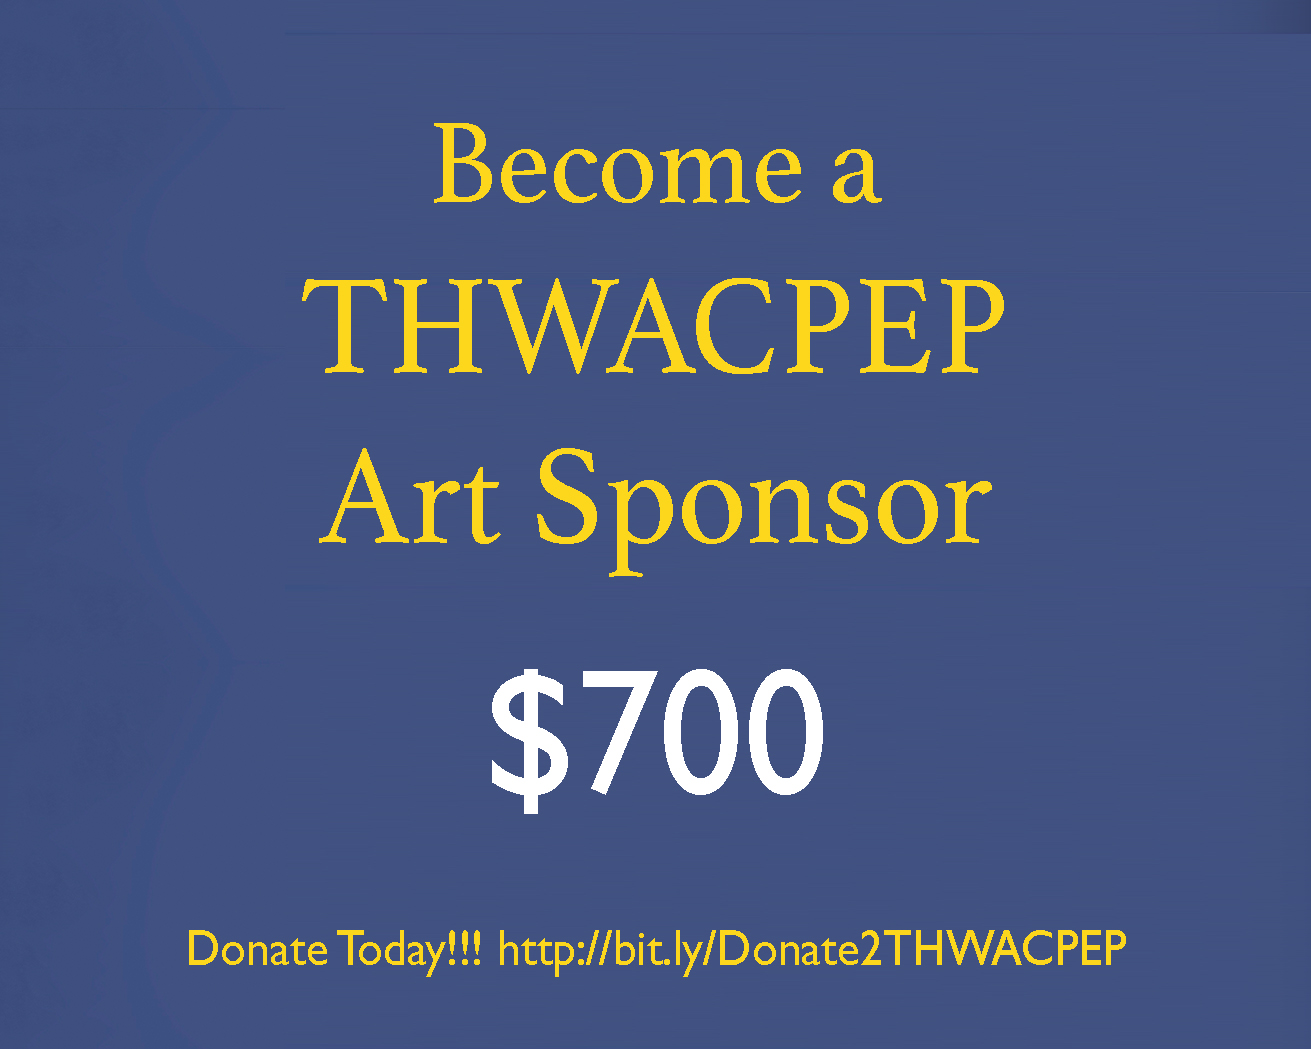 In return for a $700+ donation or more, you can receive one (1) 18x18 canvas wall art prints of theatrical portraits of cultural performers and participants from the THWACPEP project. Or you can have a cultural performing artist featured in the THWACPEP project. -